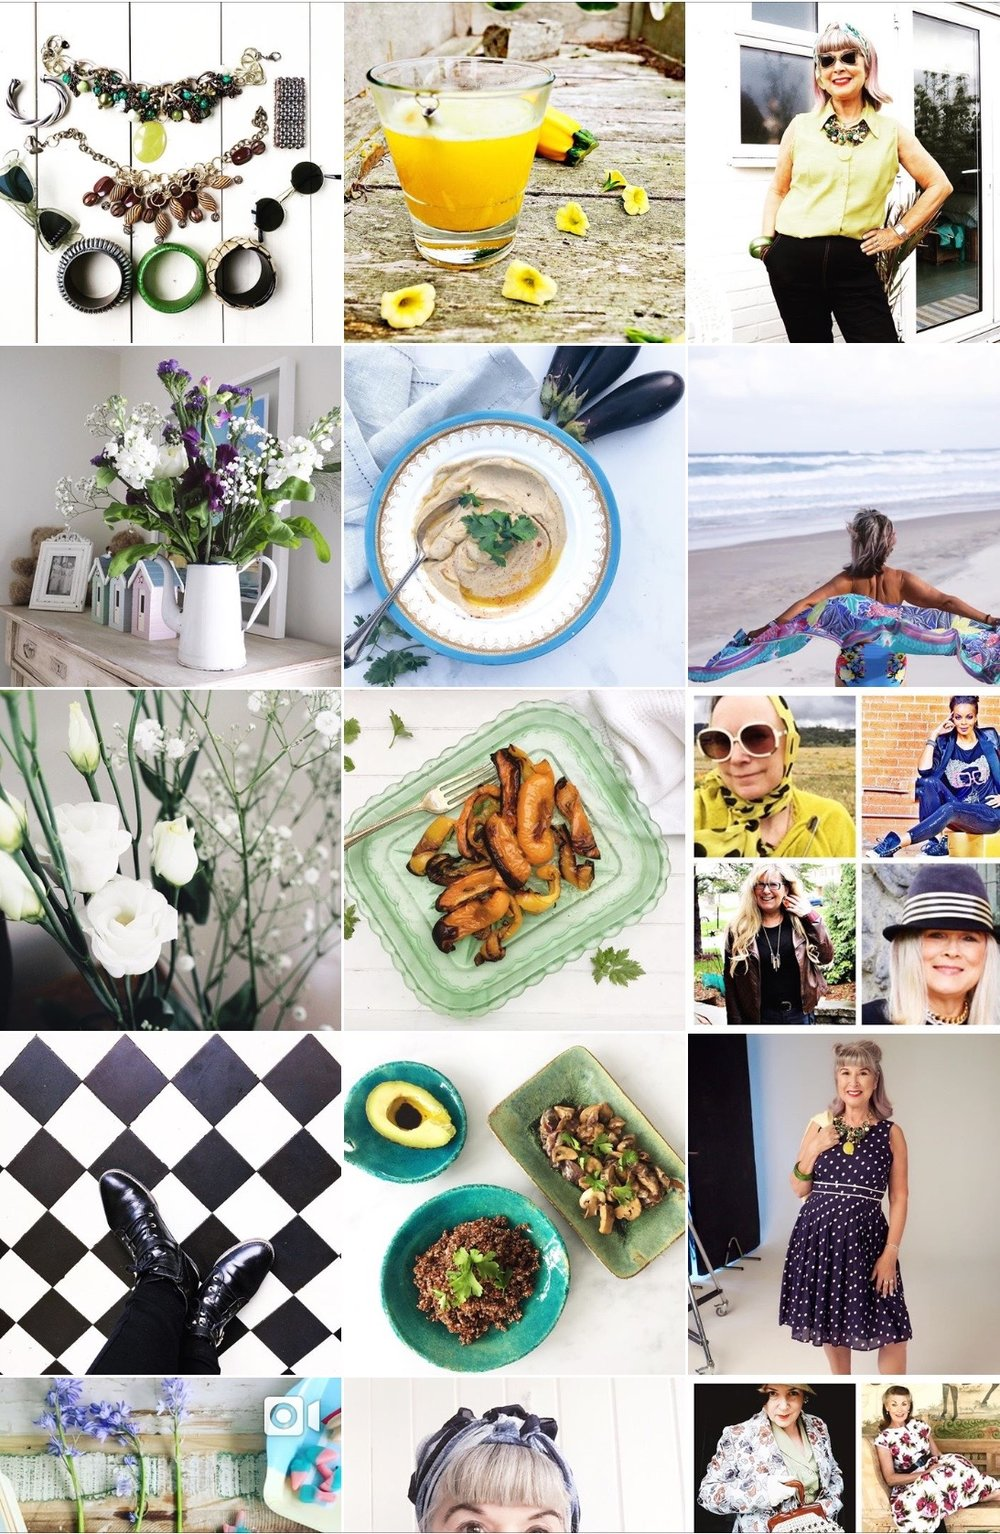 My Instagram account. @alternativeageing. Daily fashion, food & lifestyle posts.